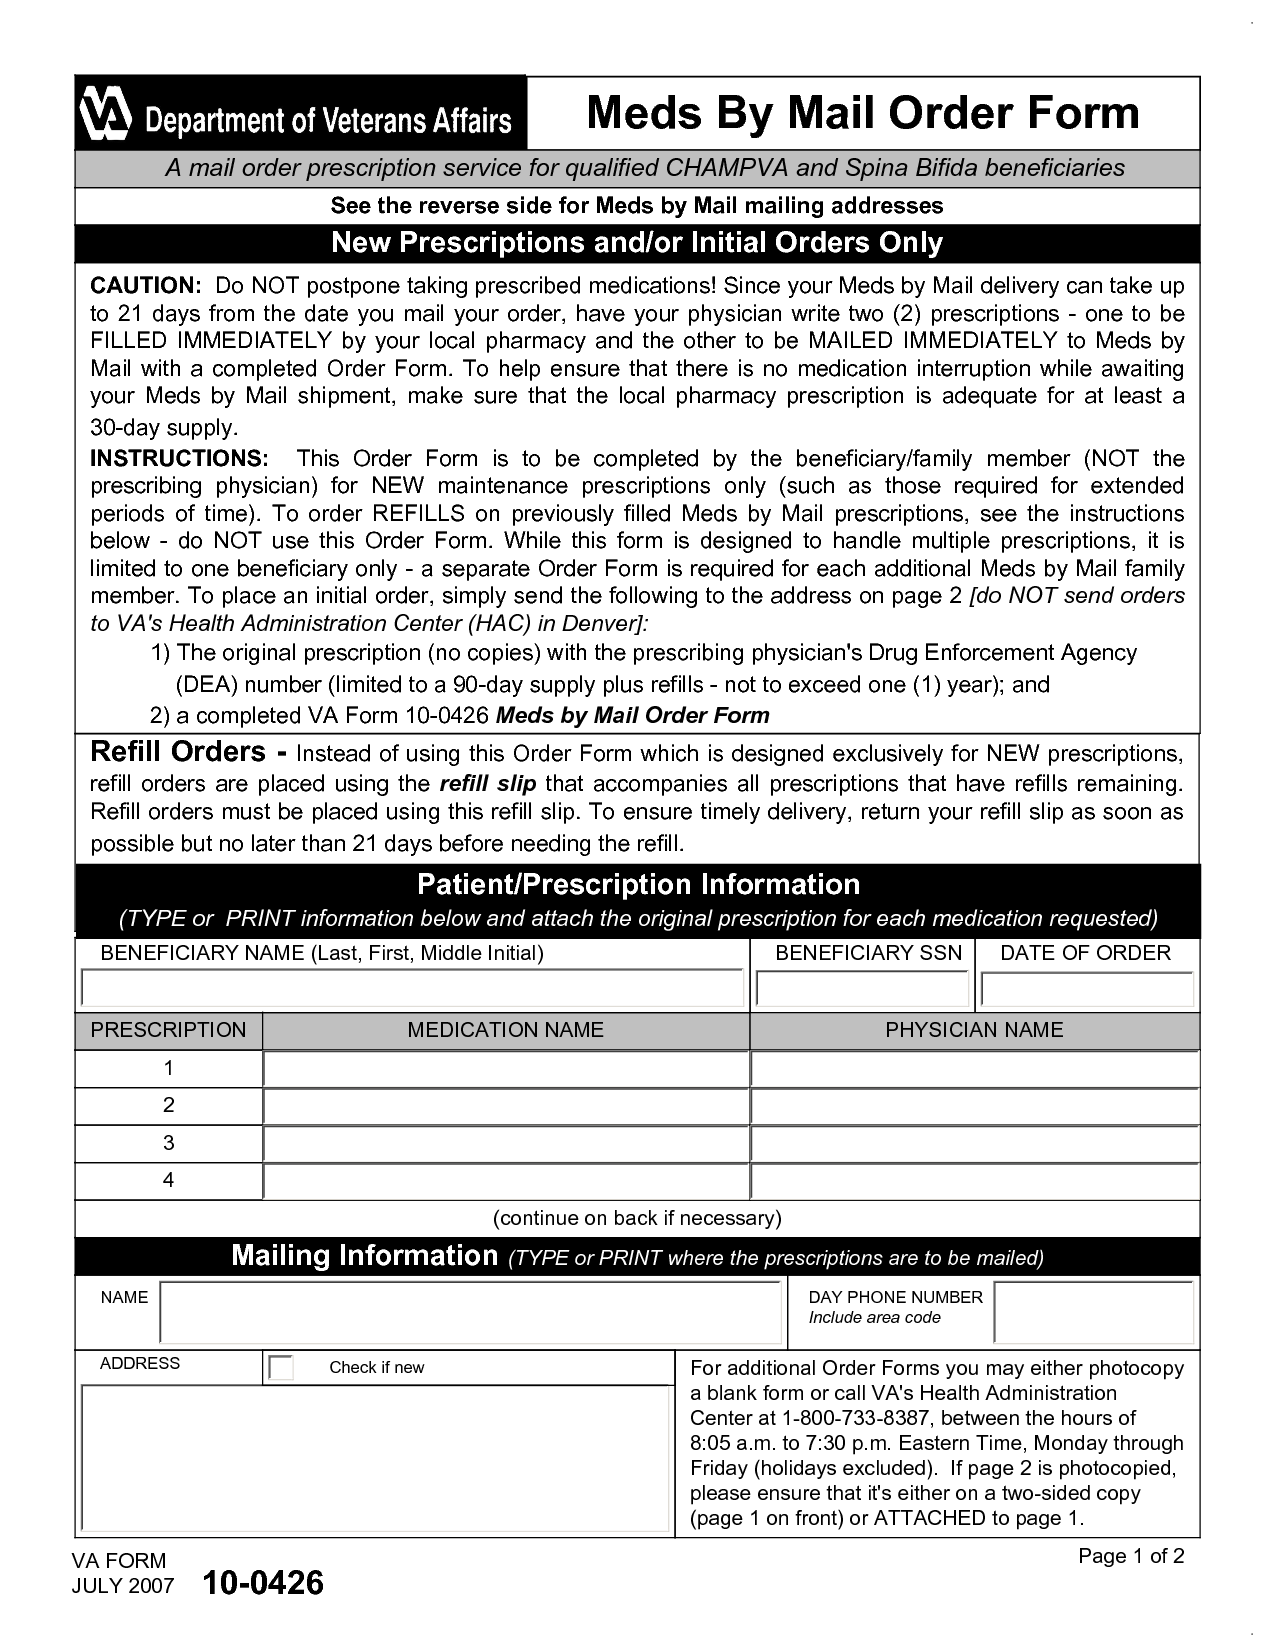 Form for Mail Order Percriptions   Meds By Mail Order Form A mail ...